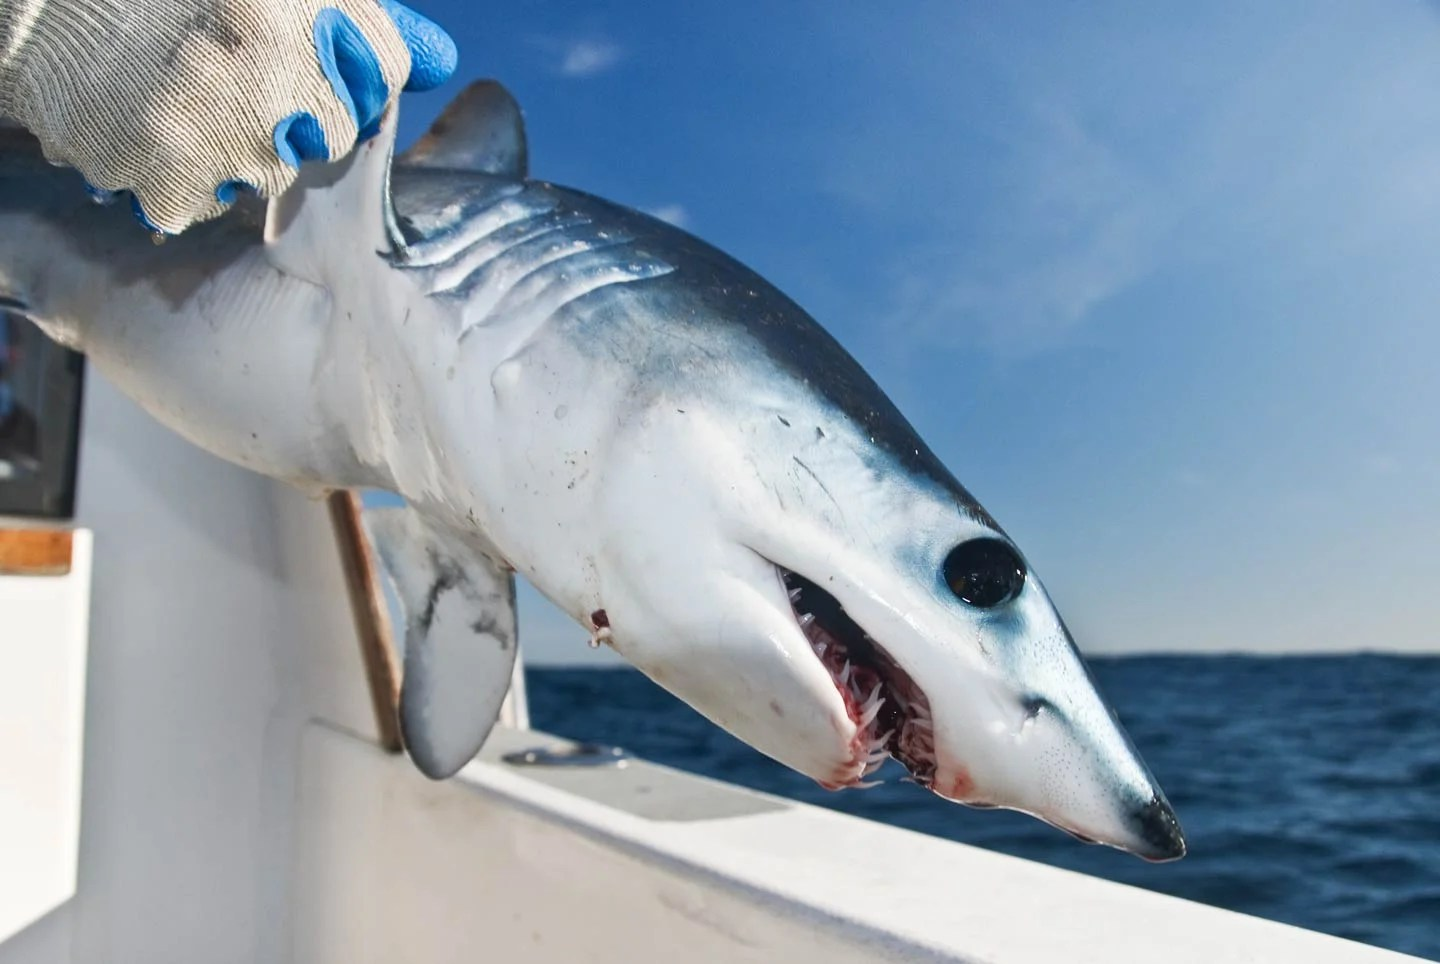 A young Mako Shark being released back into the ocean.